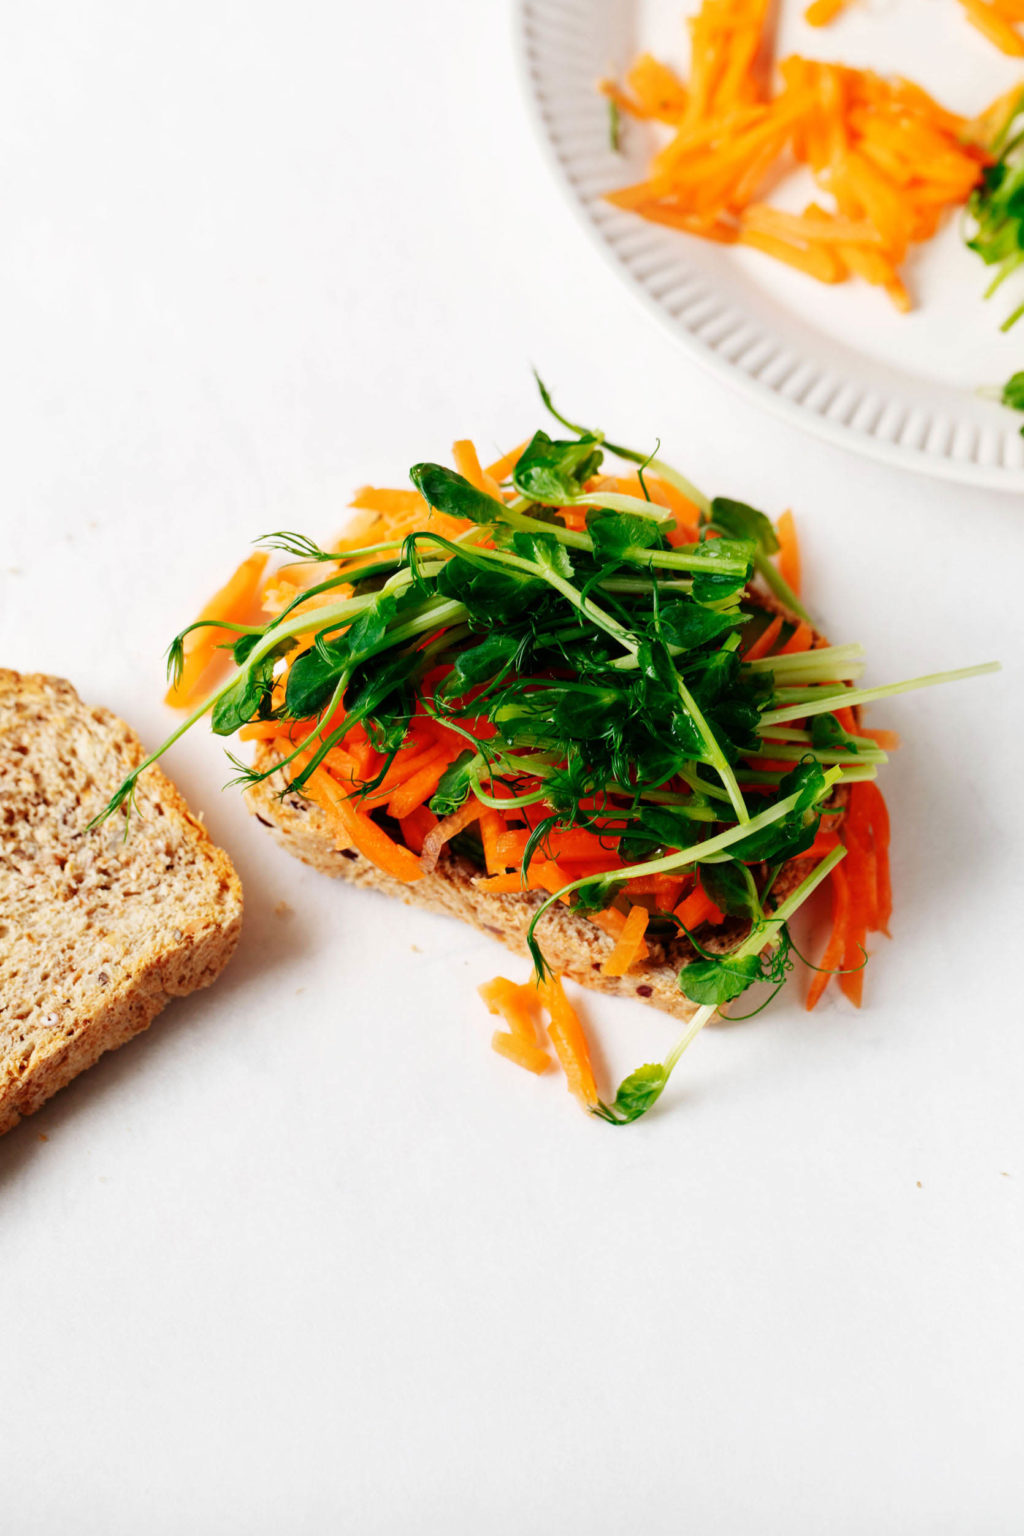 Two slices of whole grain bread are on a white surface. One slice has been piled with carrots and sprouts.